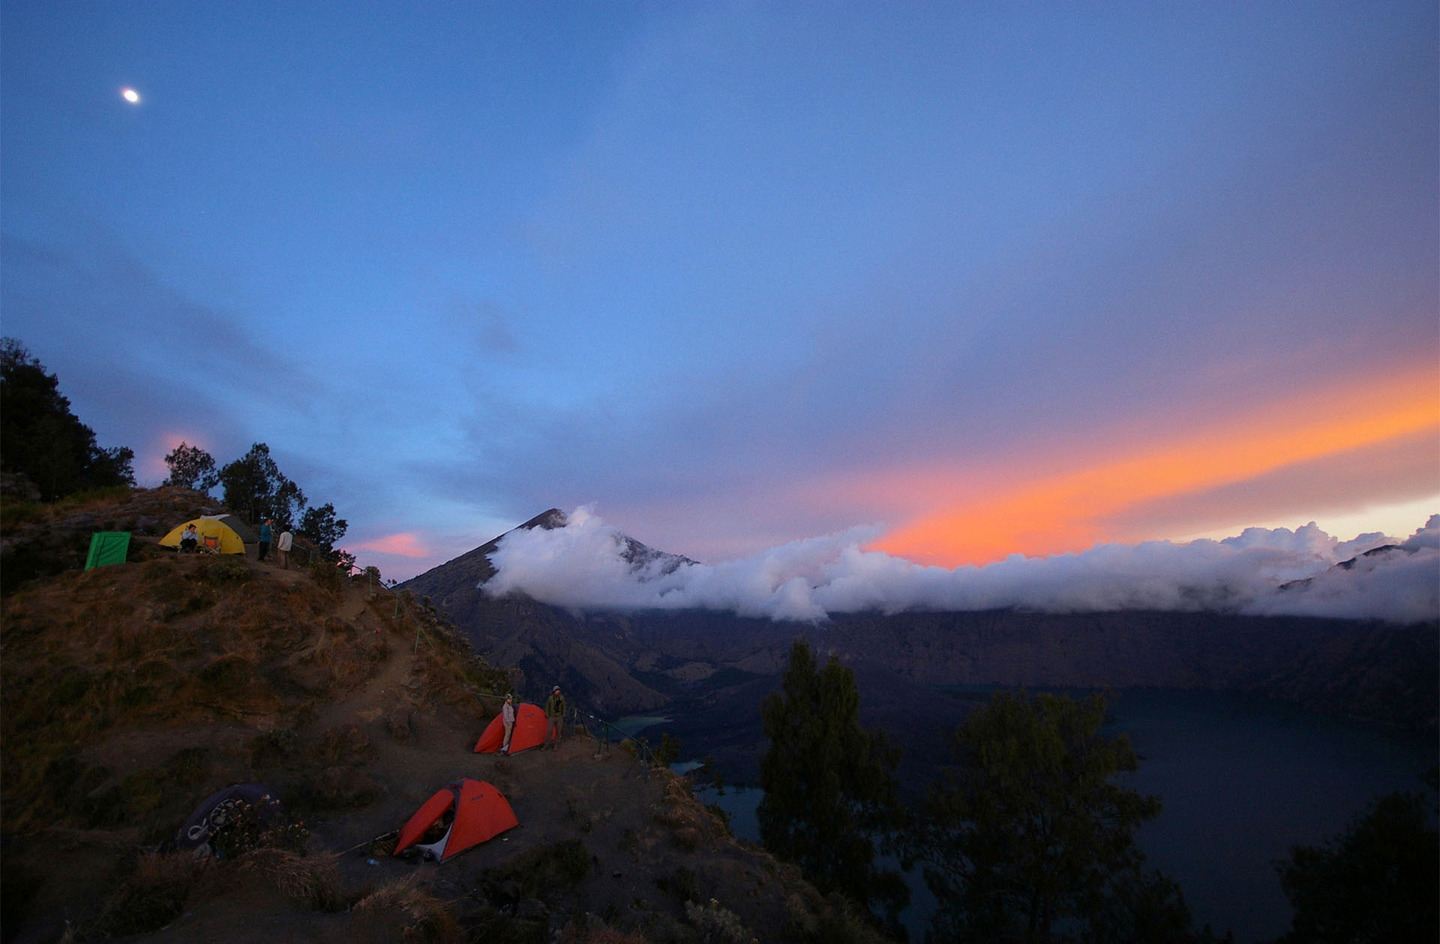 Indonesia Mt Rinjani in Lombok by Alister Munro